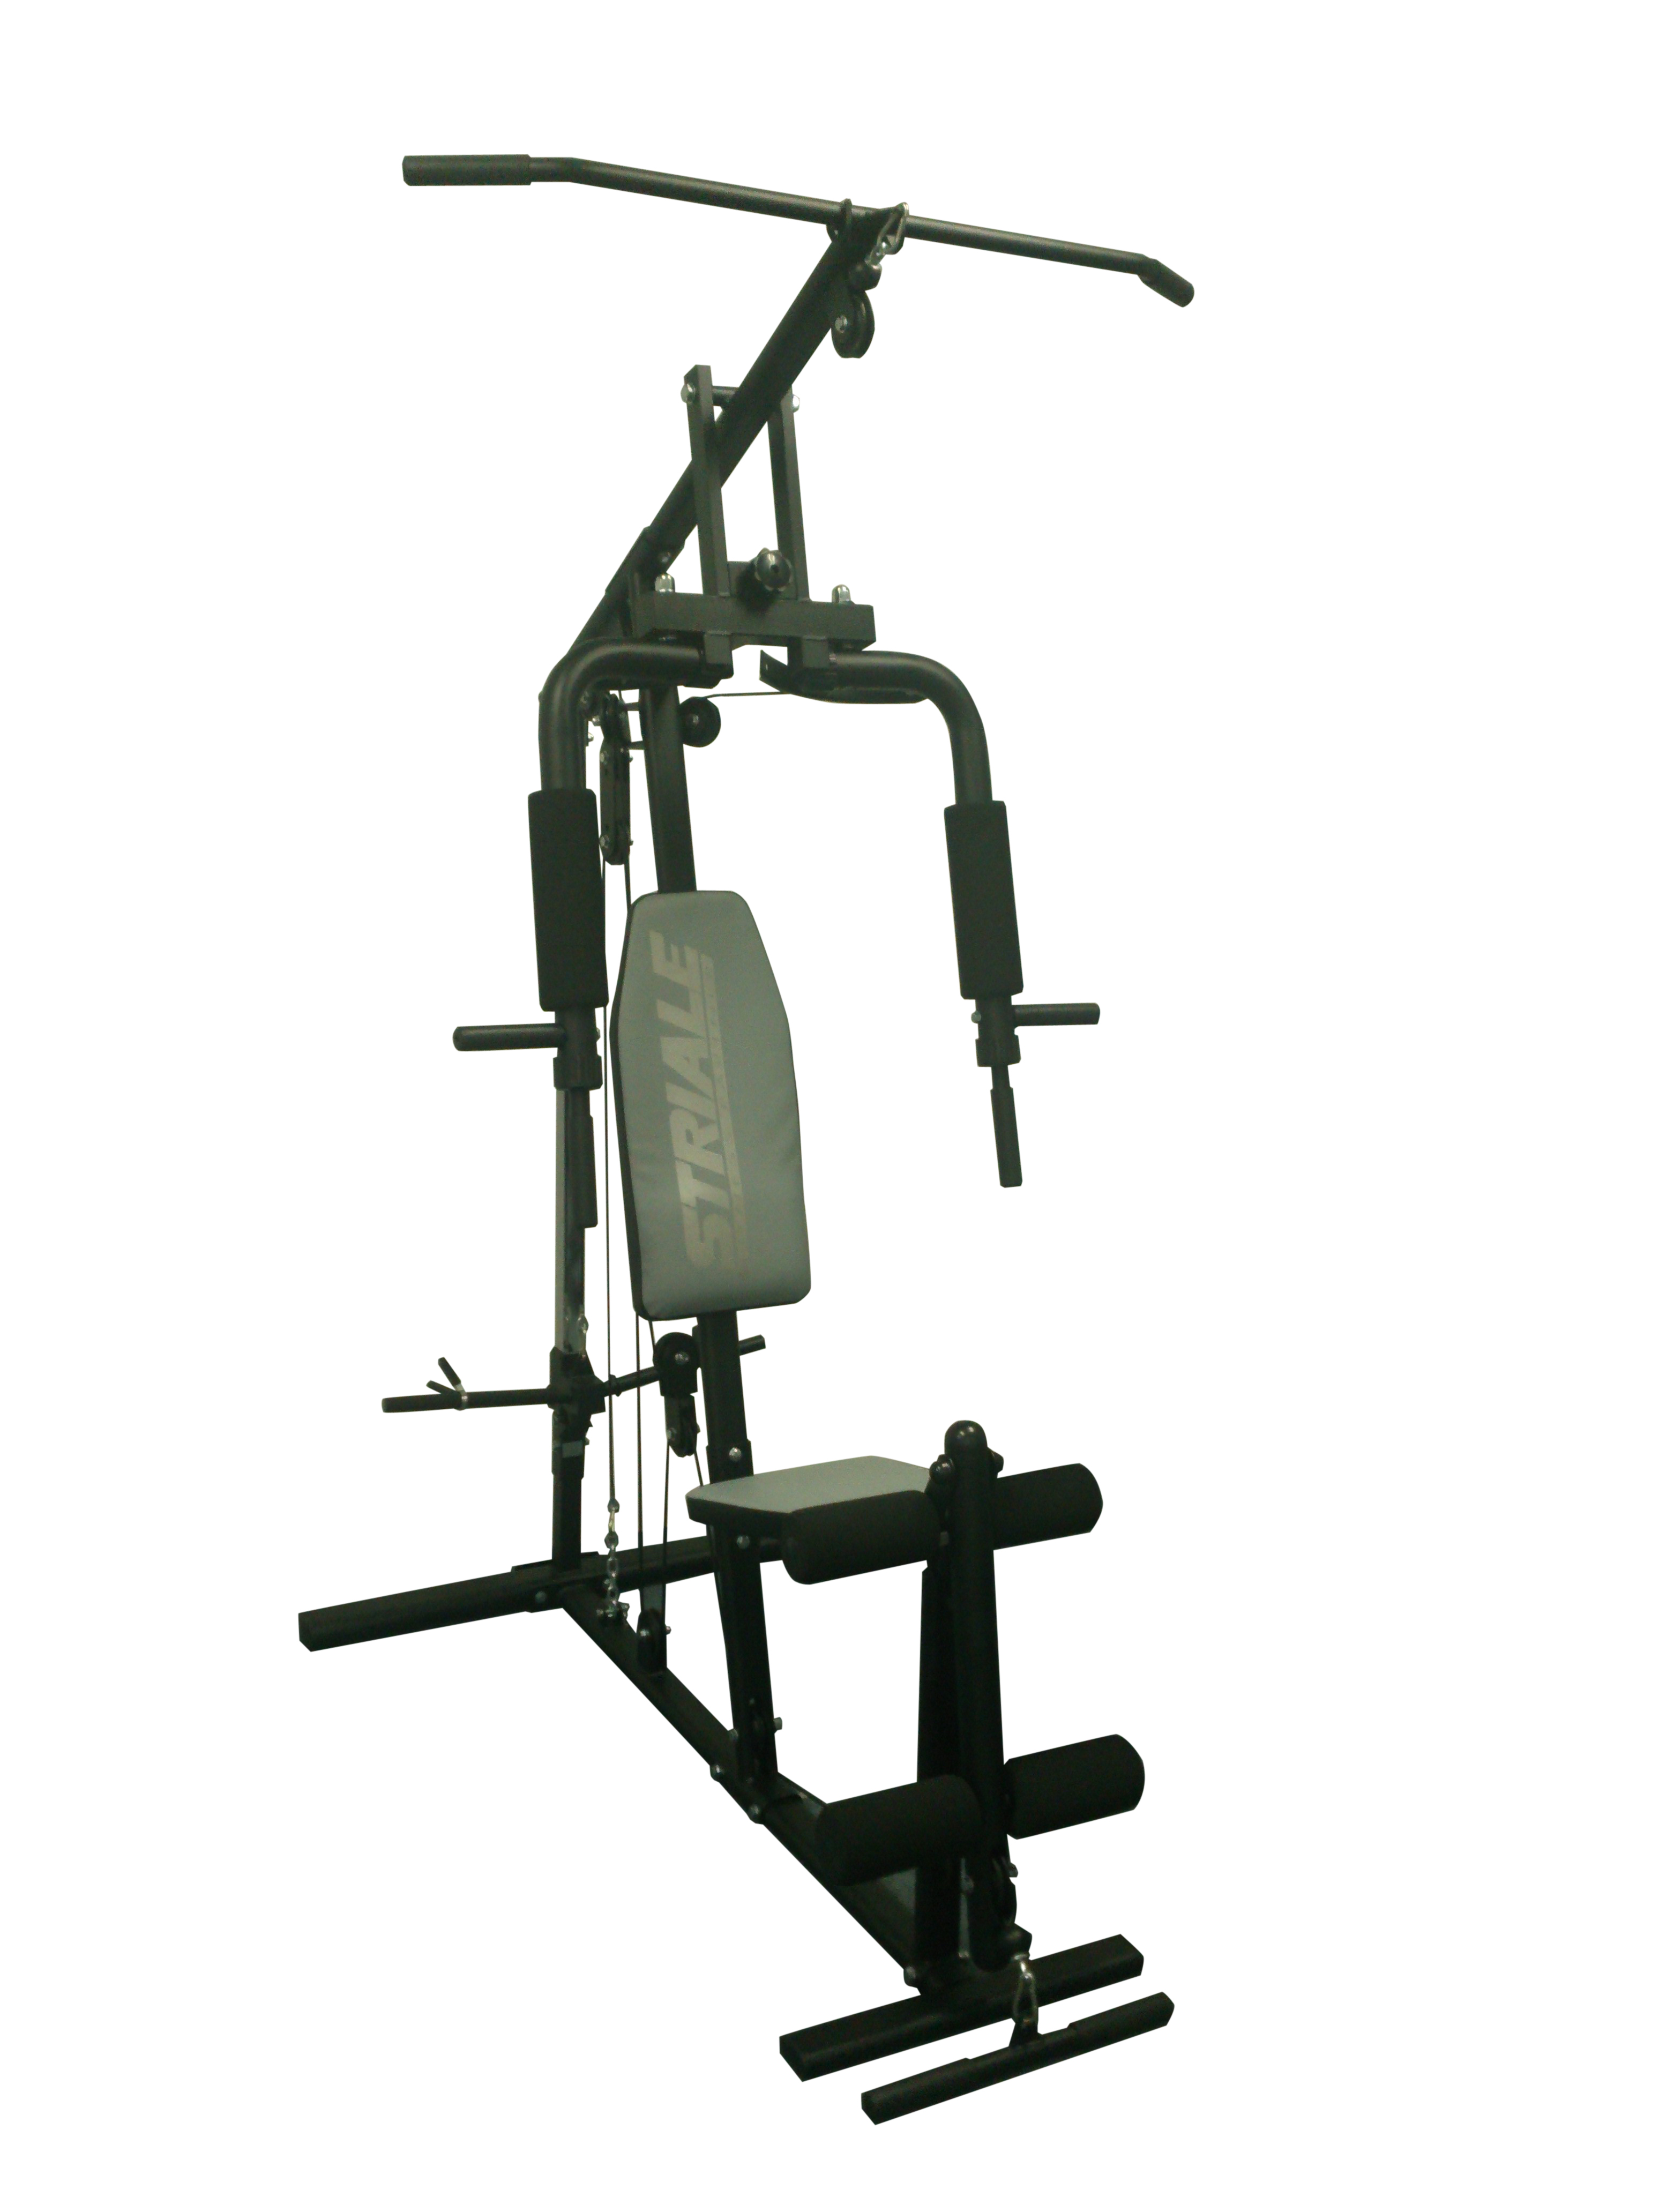 Striale sh 6000 plate loaded multigym fitness equipment ni - Striale banc de musculation multi power ...